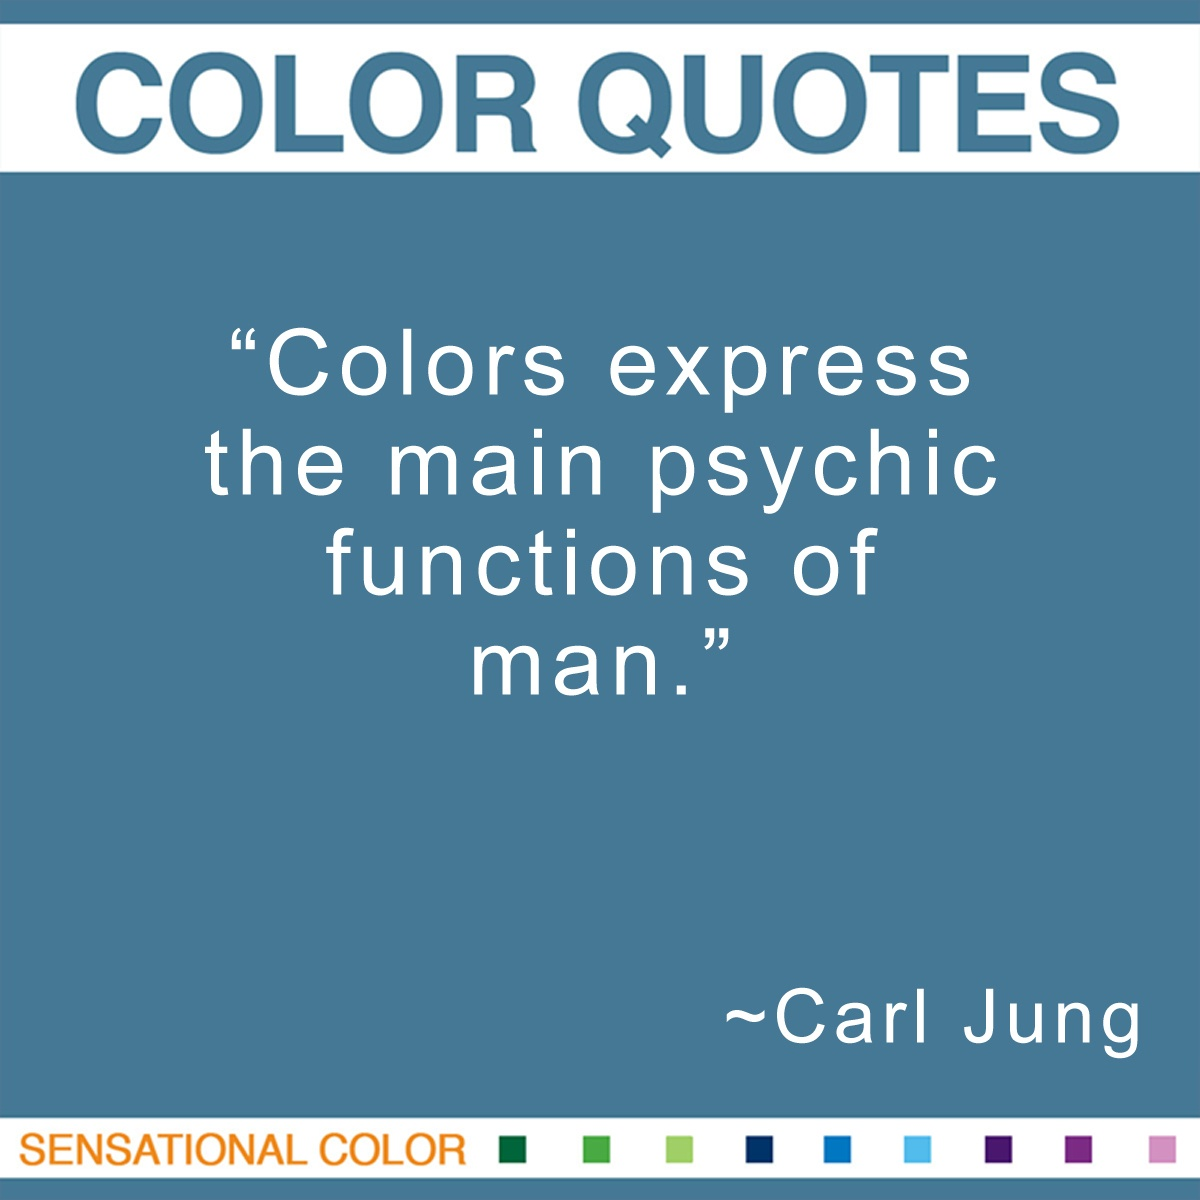 """Colors express the main psychic functions of man."" - Carl Jung"